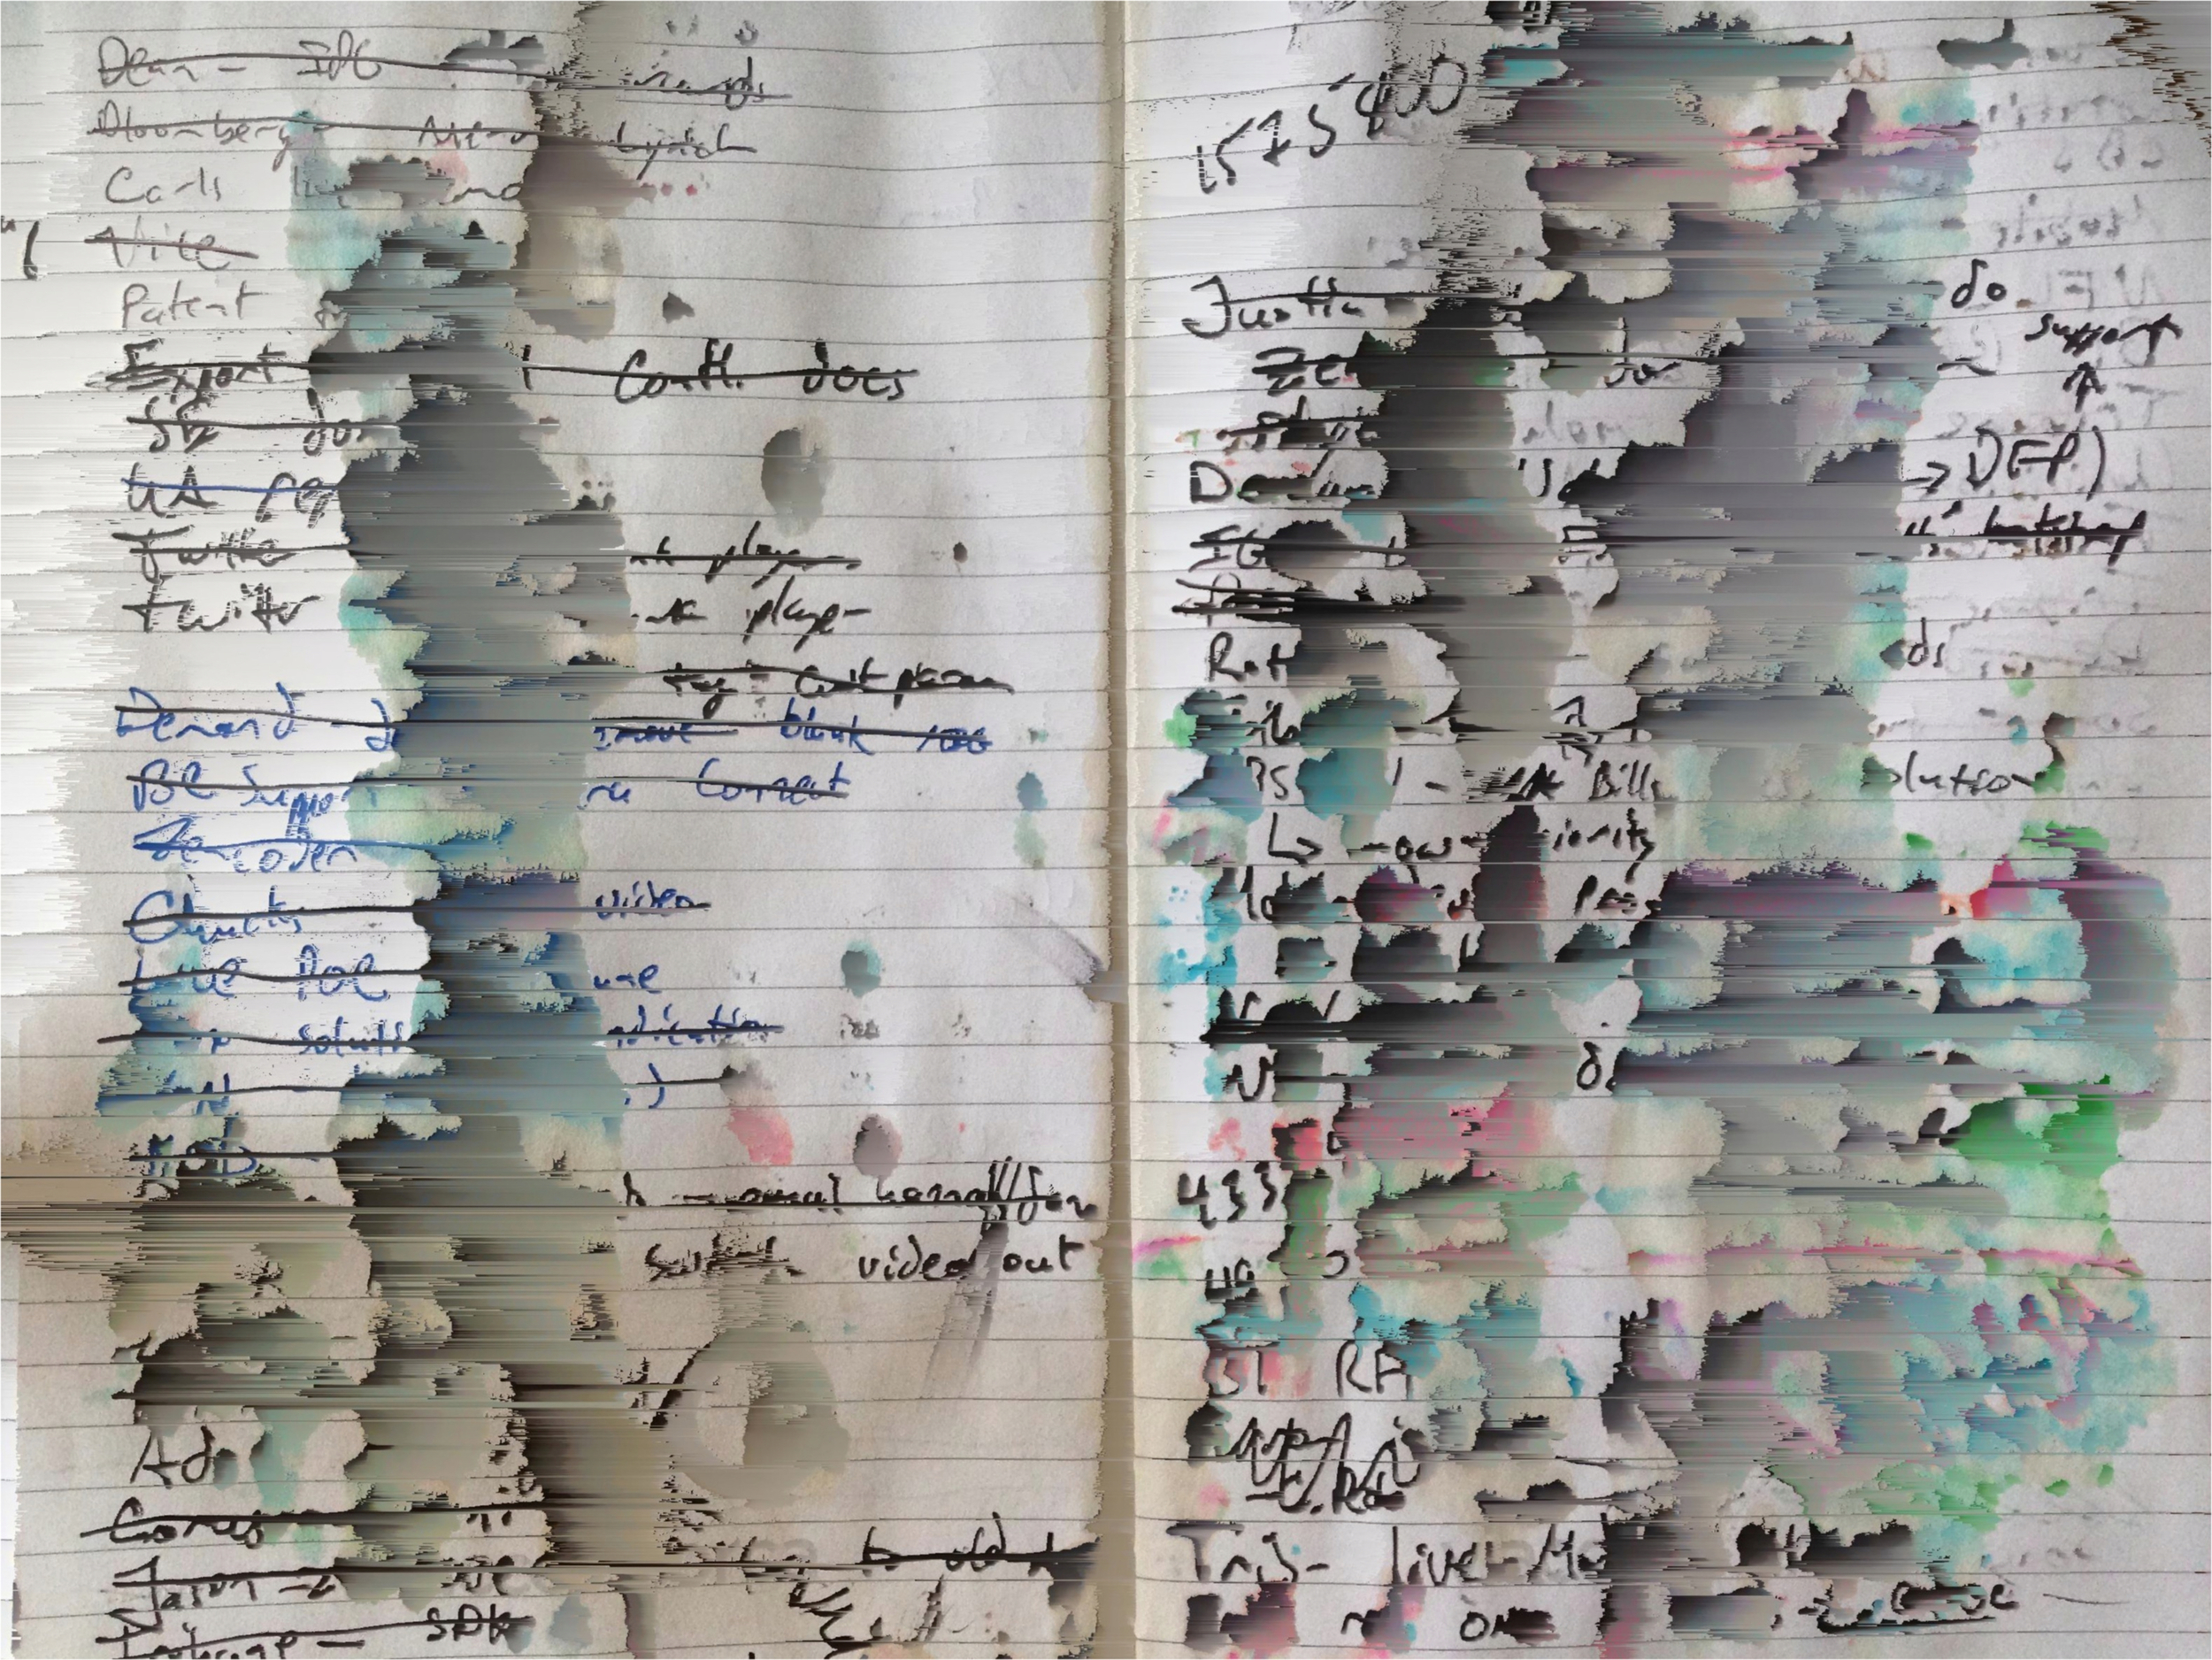 Pixel sorted notebook with coffee damage